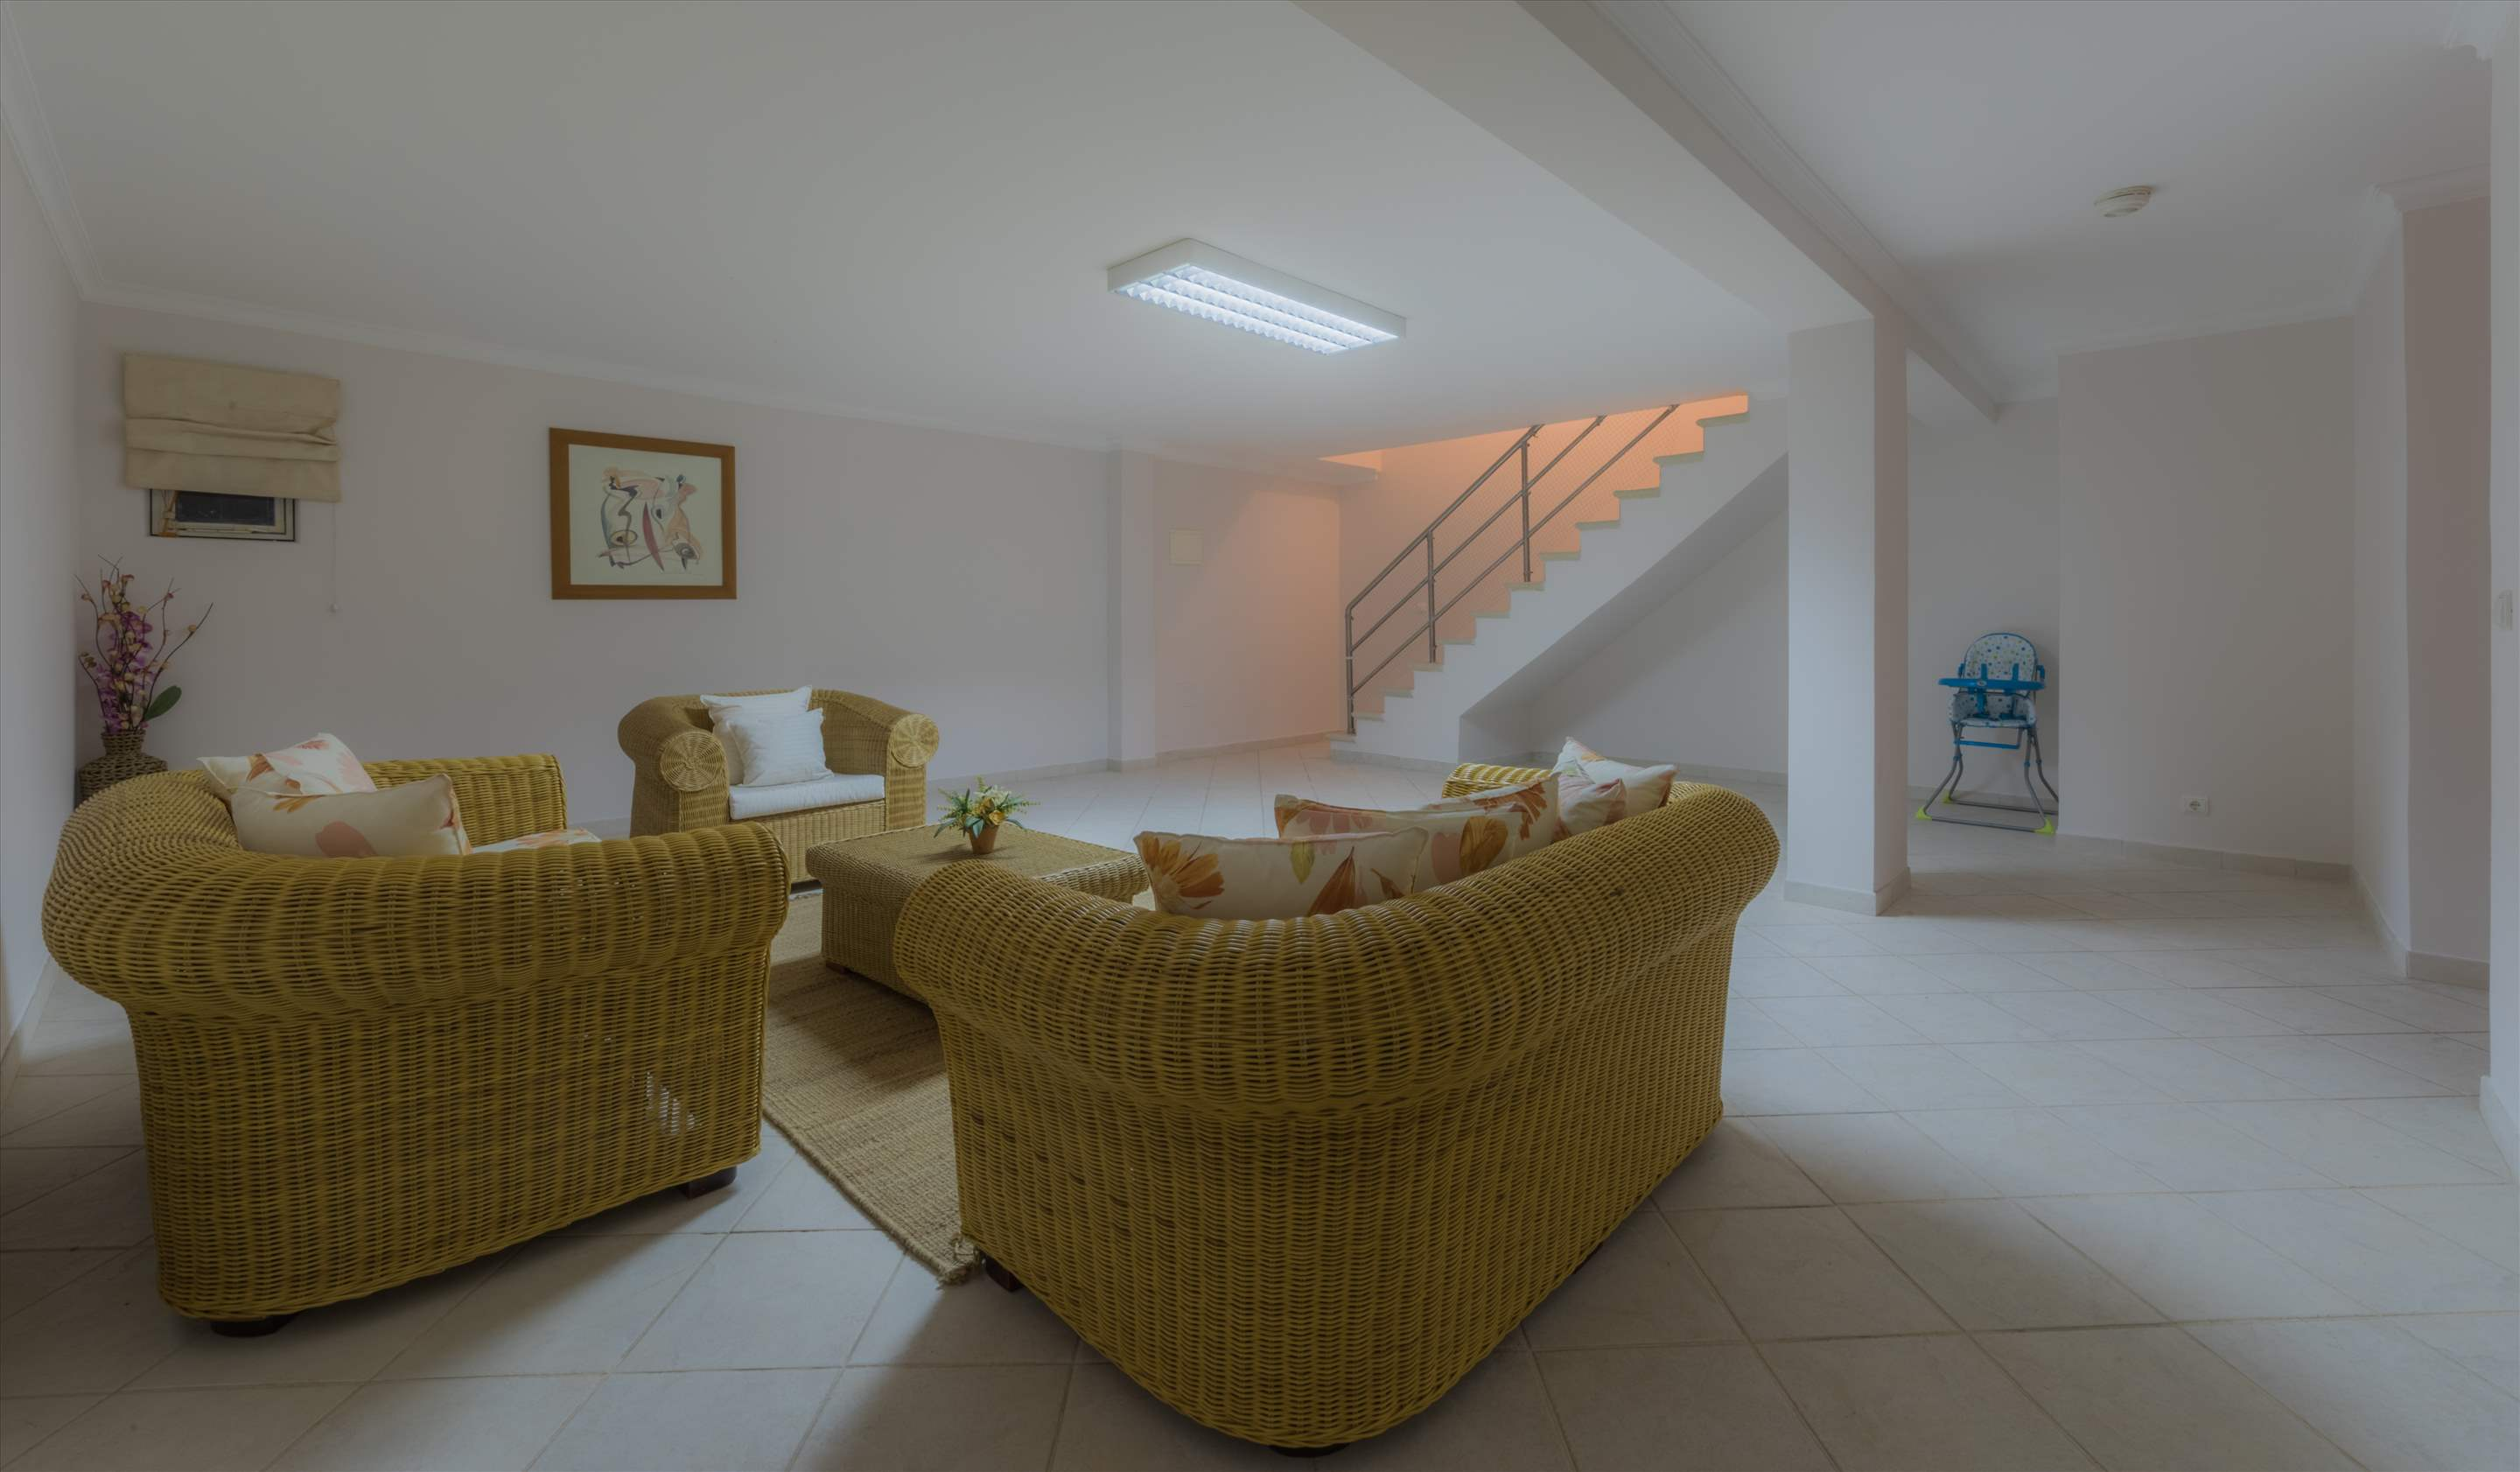 Villa 29, 4 bedroom villa in Vale do Lobo, Algarve Photo #6